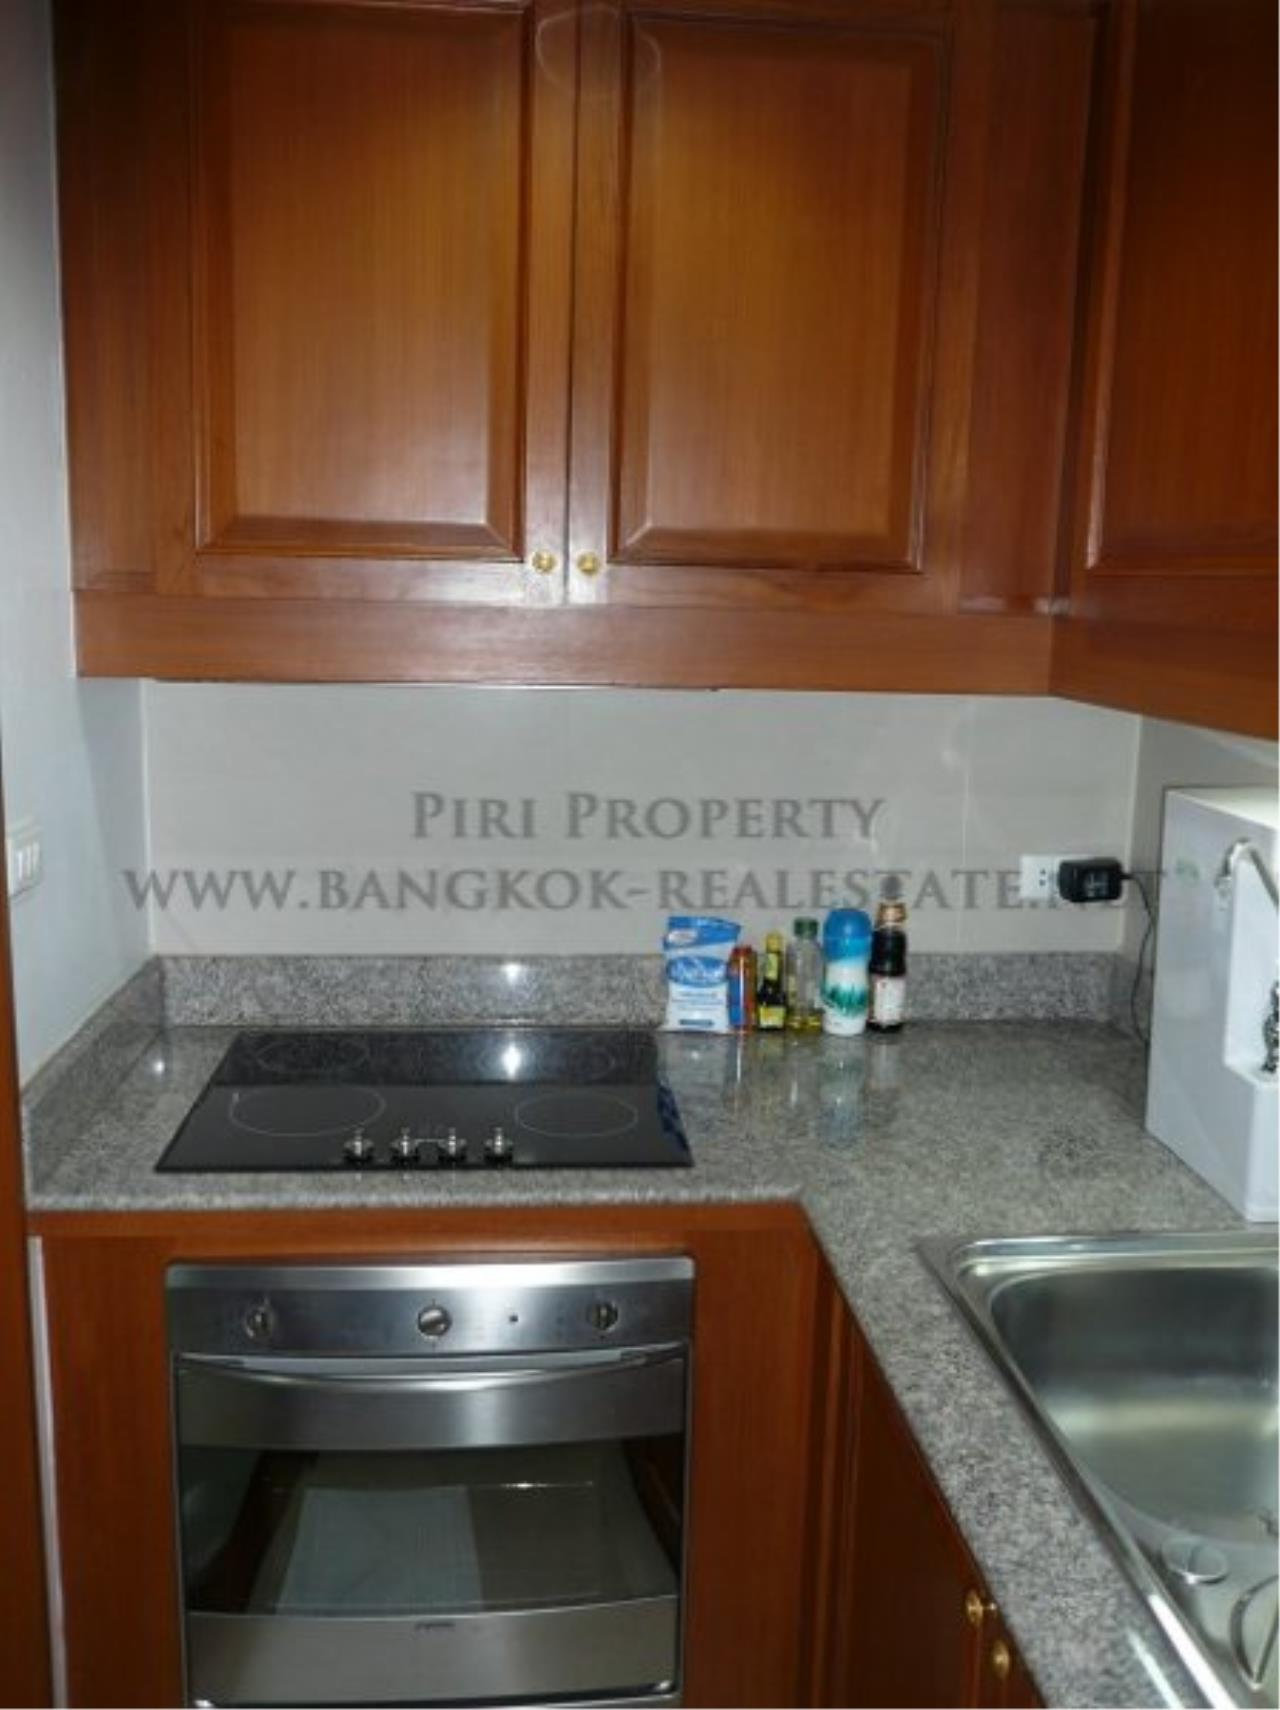 Piri Property Agency's Duplex Condominium in Asoke for Sale - 3 Bedroom 5